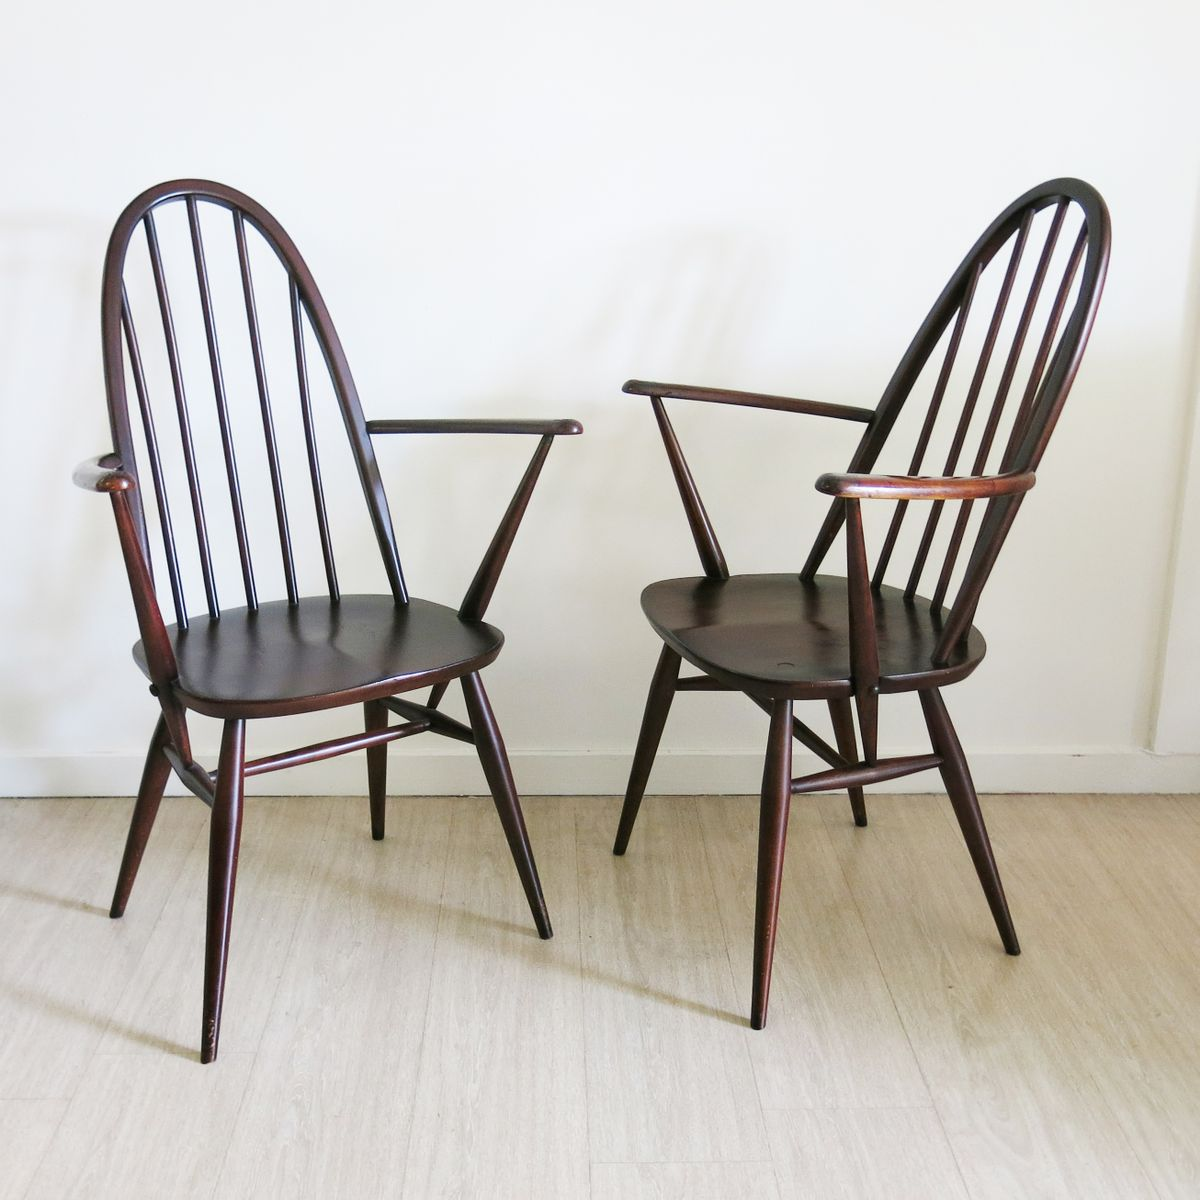 Quaker Back Windsor Armchairs By Lucian Ercolani For Ercol 1970s Set Of 2 F